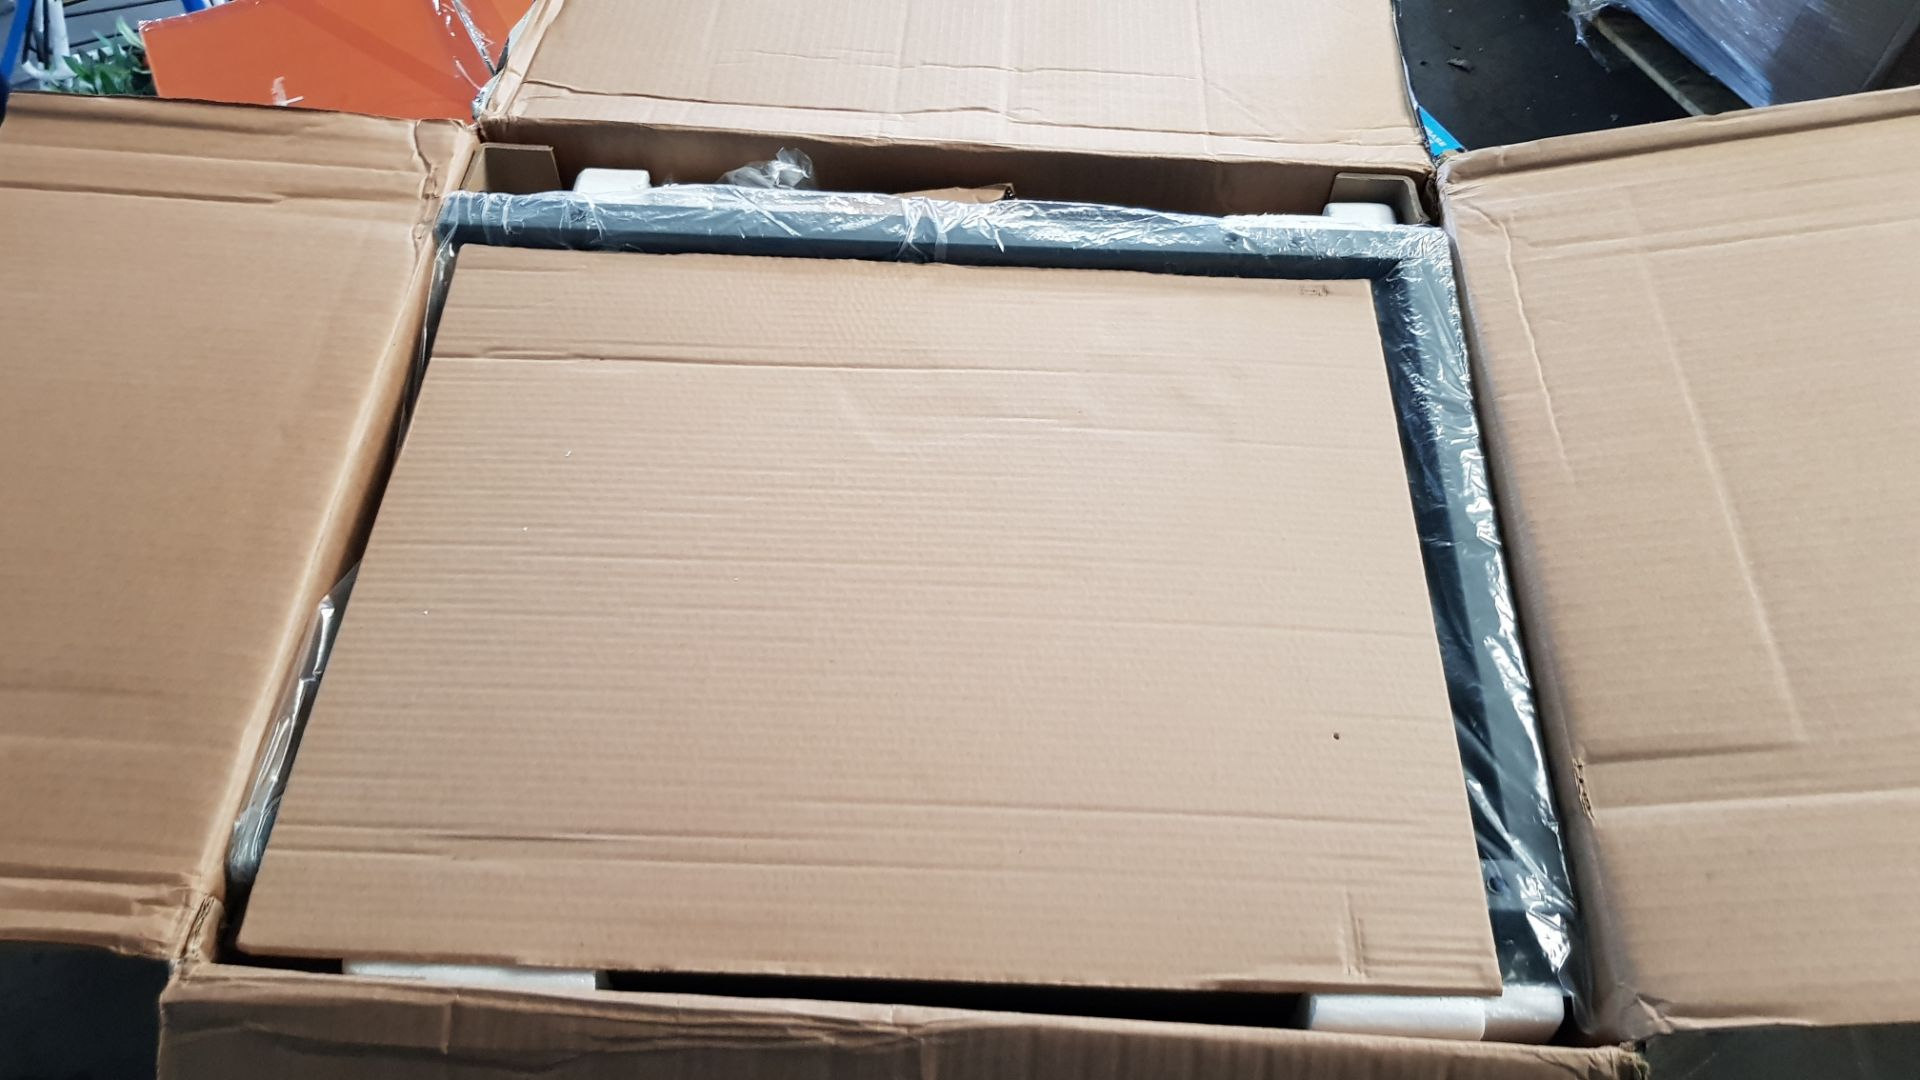 (P8) 1x Texas Nimbus 2 Burner Gas BBQ RRP £80. Contents Appear As New – Unused & Not Previously Re - Image 5 of 6